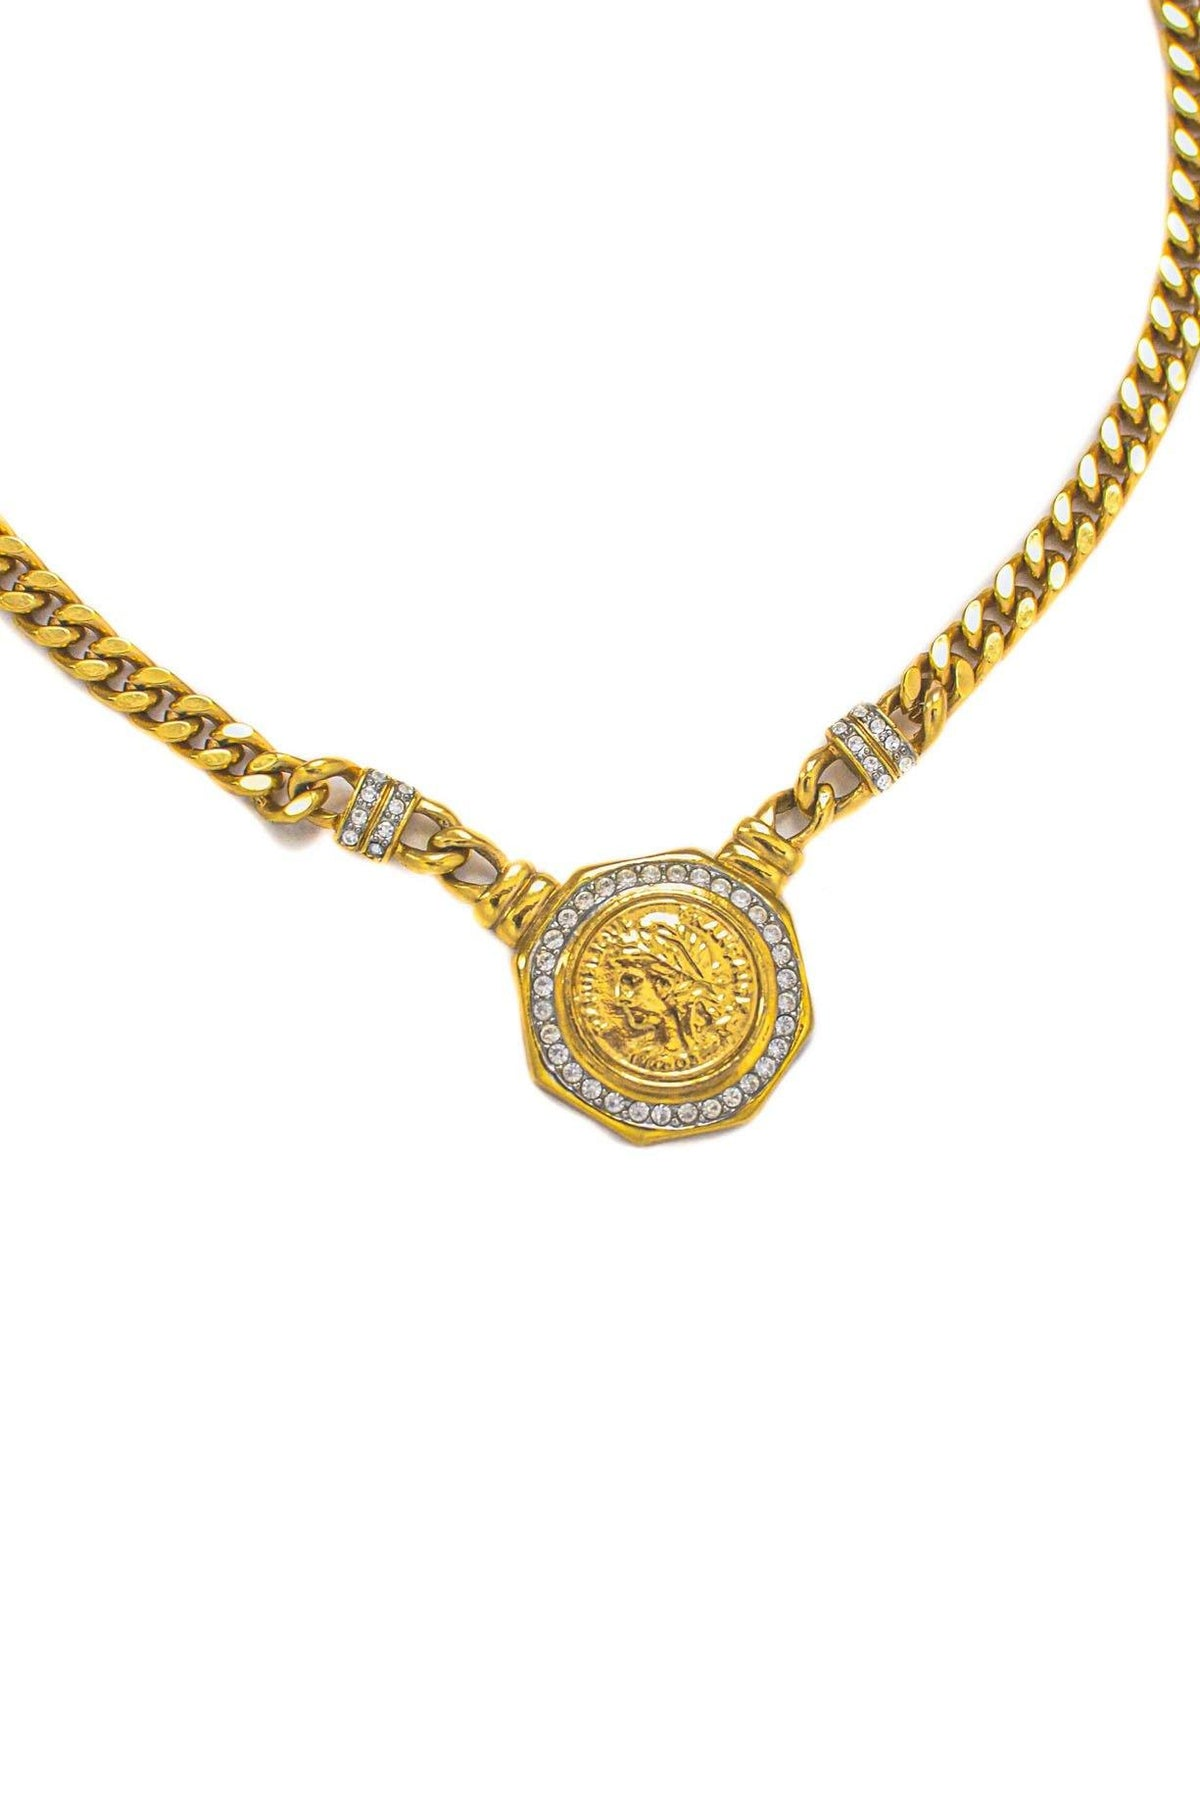 Vintage Rhinestone Coin Pendant Necklace from Sweet and Spark